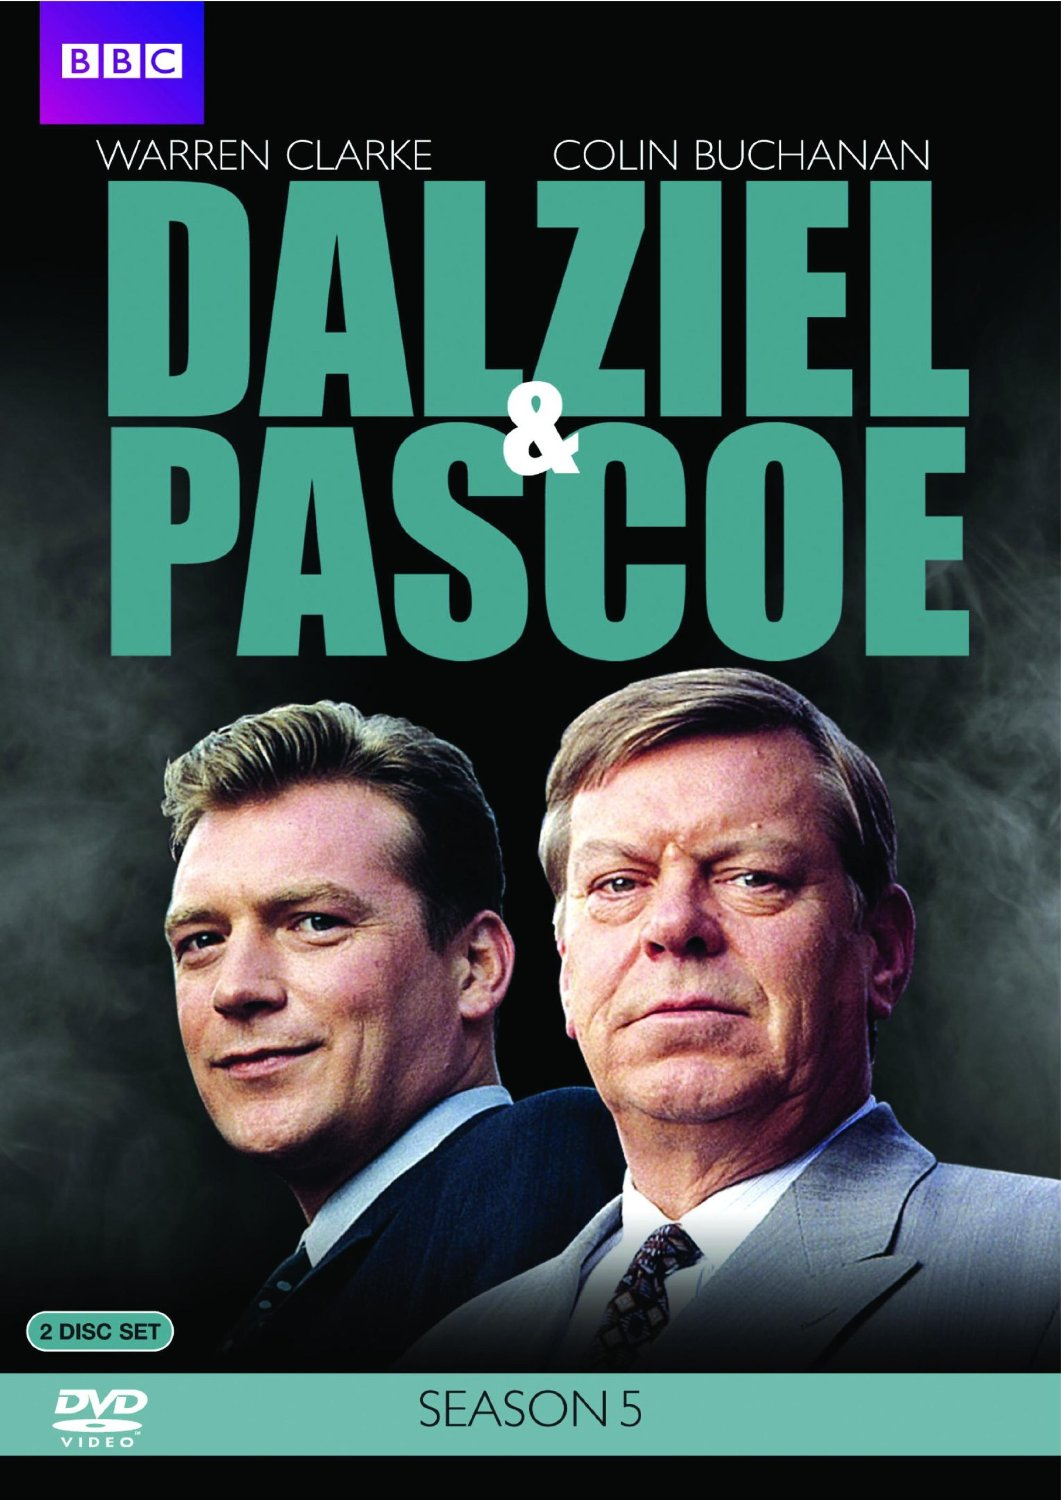 Dalziel And Pascoe: Season 5